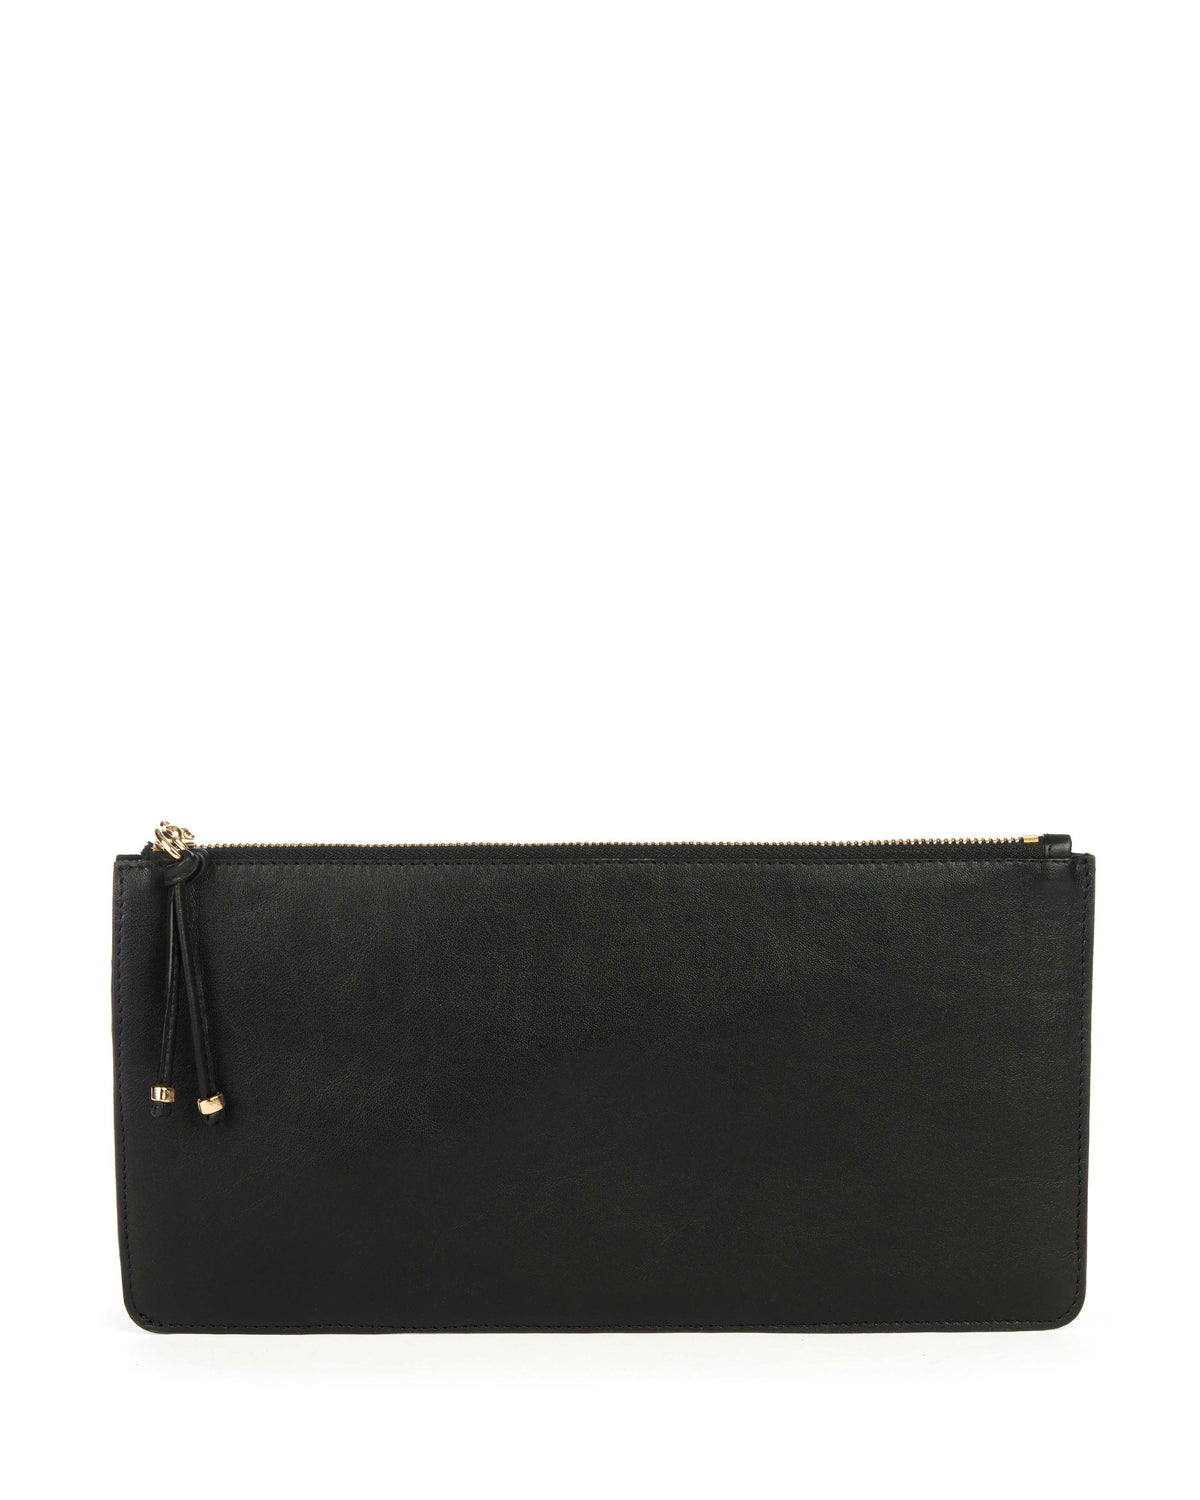 BOLSILLO IV CLUTCH in Black Napa